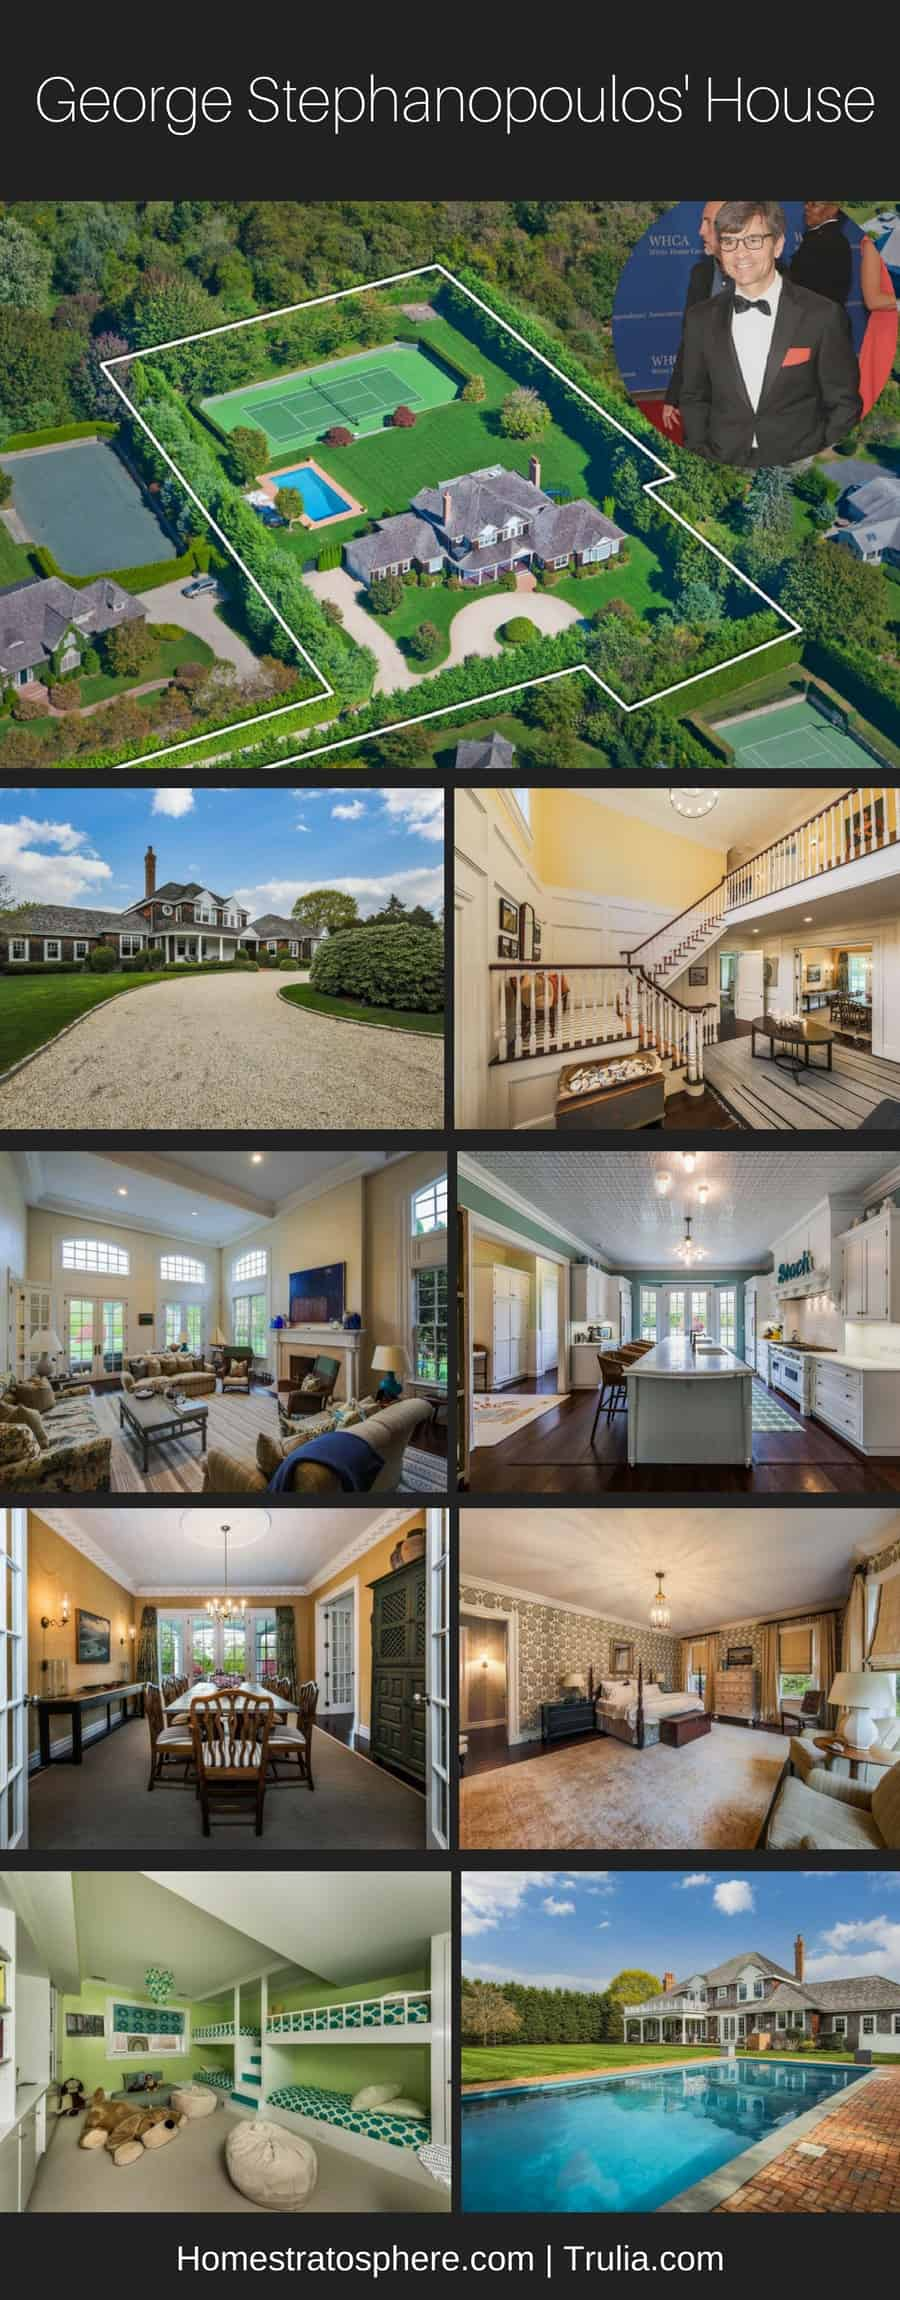 George Stephanopoulos' Southampton Home - Photo Collage